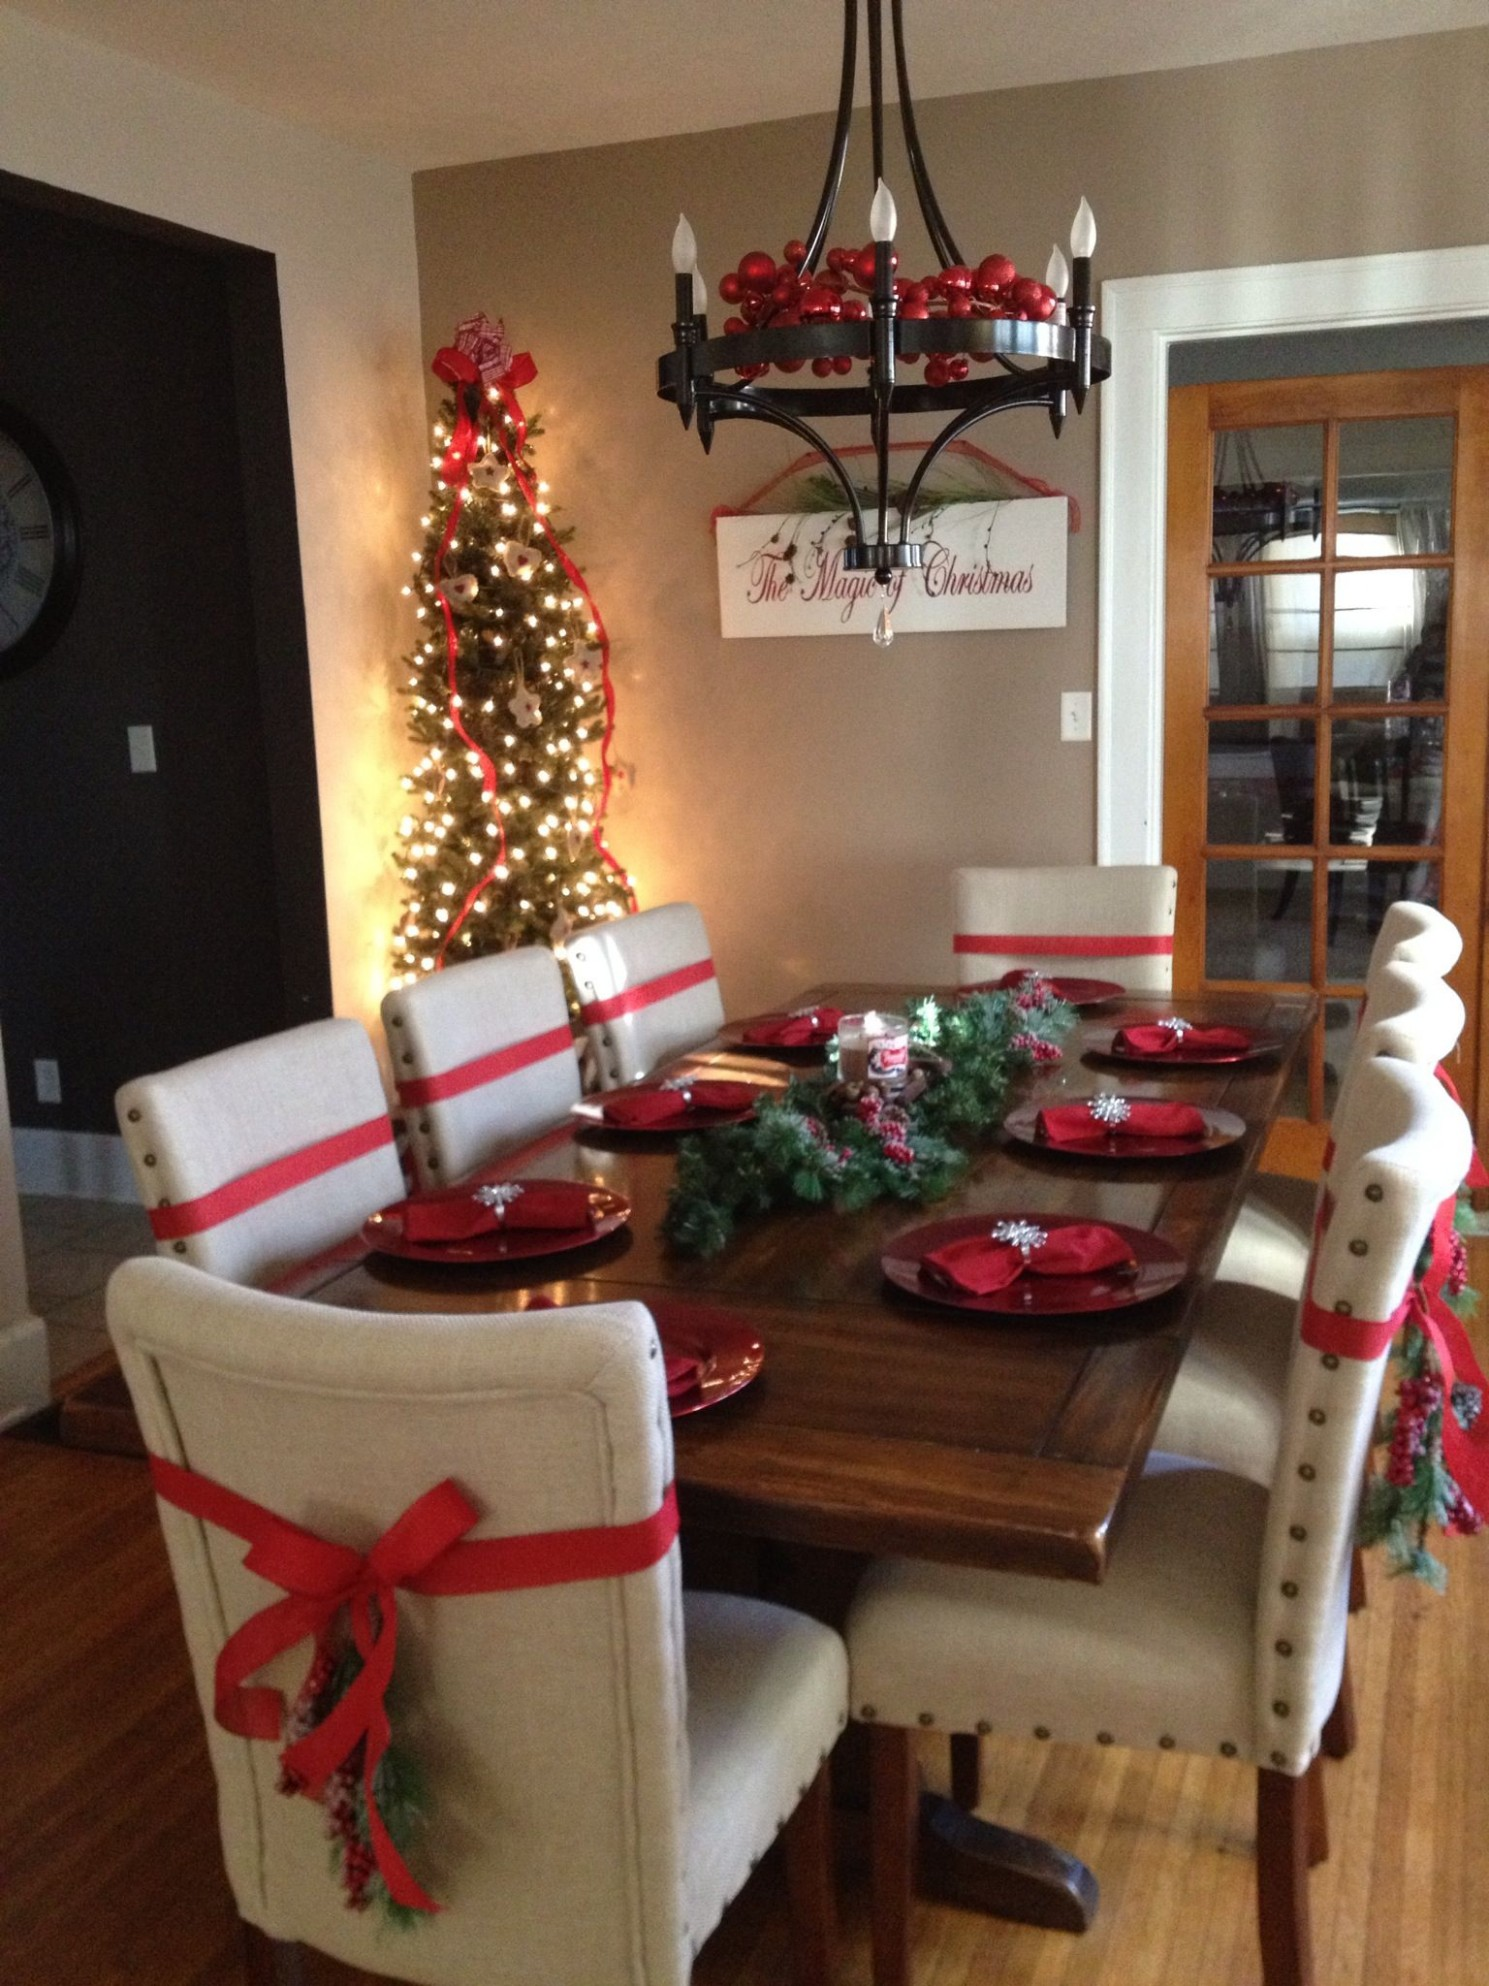 The Best Christmas Decorating Ideas for Your Dining Room Decor  - Dining Room Ideas For Christmas